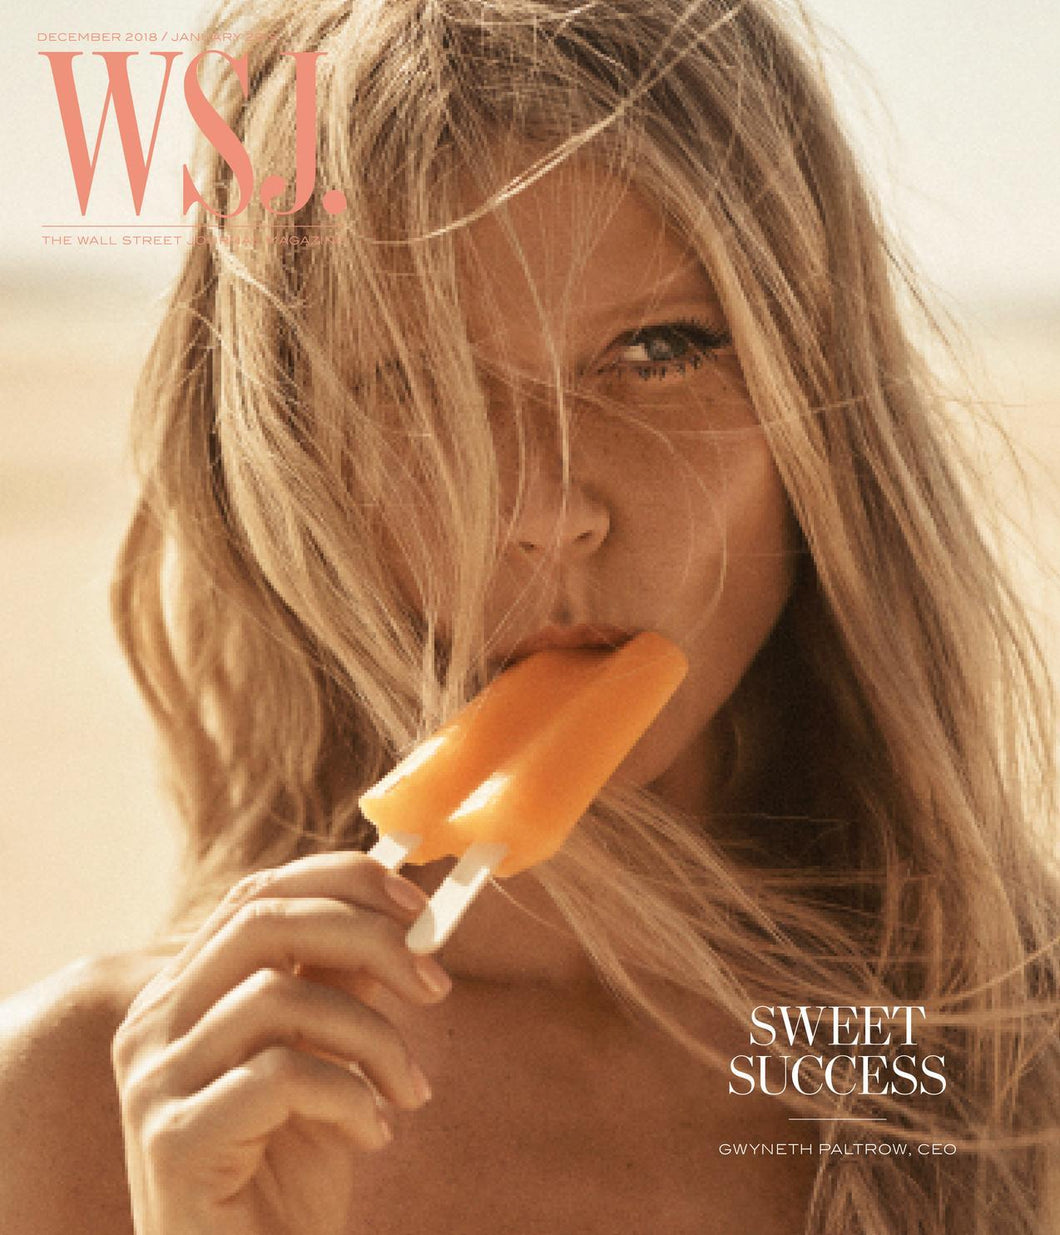 Gwyneth Paltrow | WSJ. Magazine, Dec. 2018 / Jan. 2019